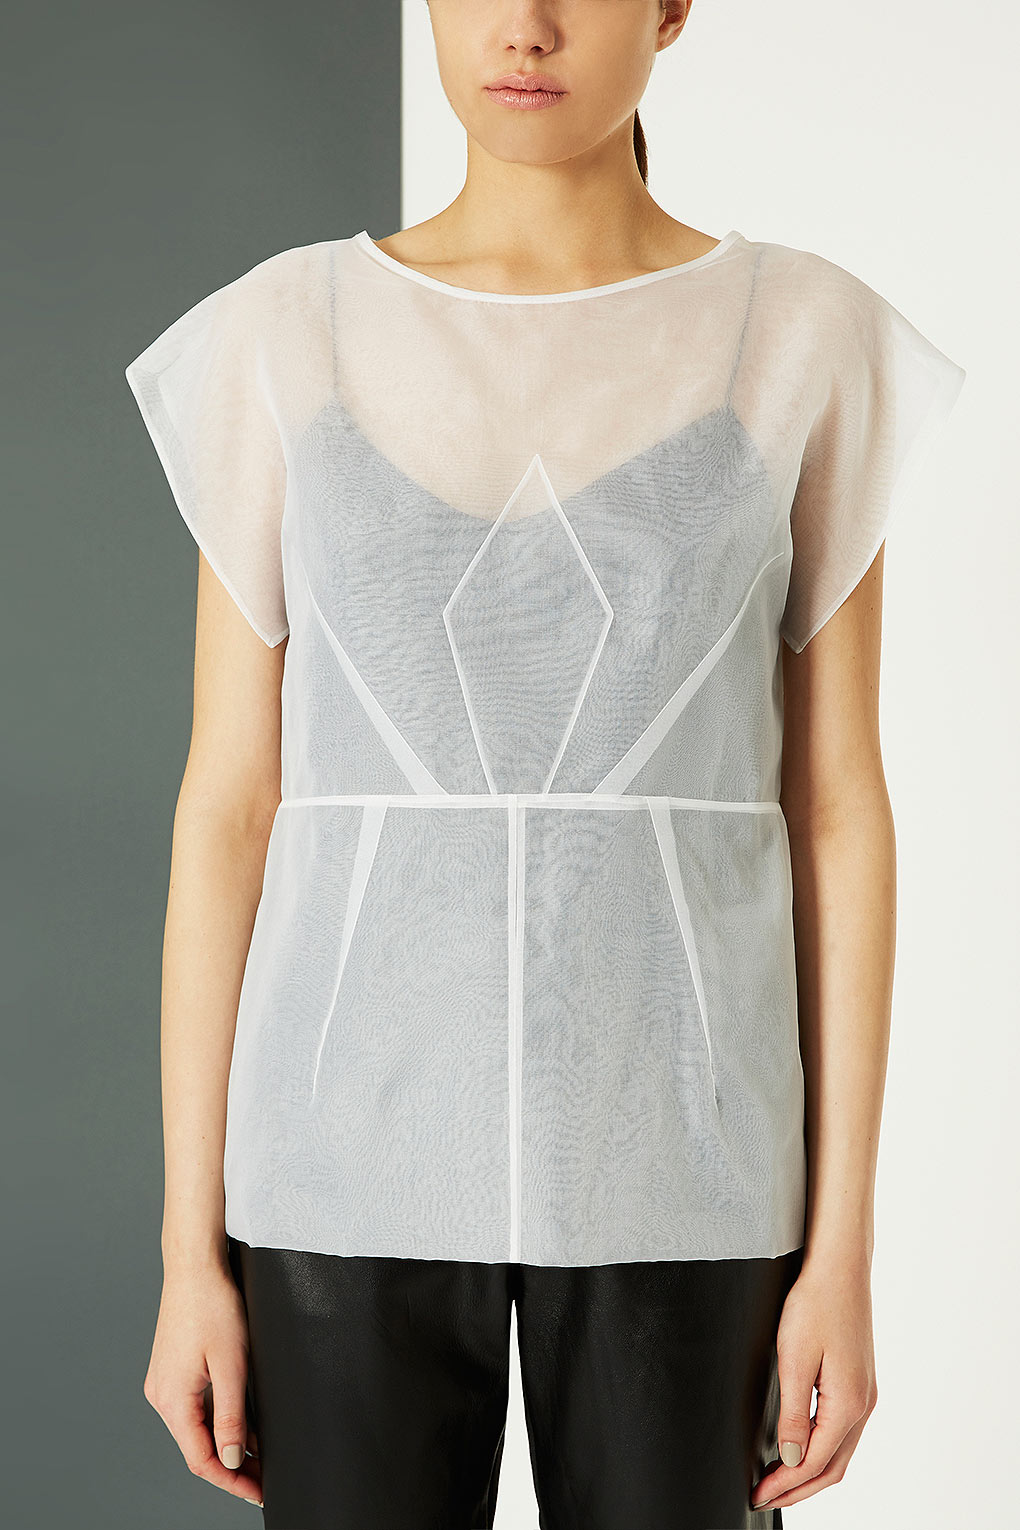 f21be6a5b891f9 TOPSHOP Organza Origami Top in White - Lyst